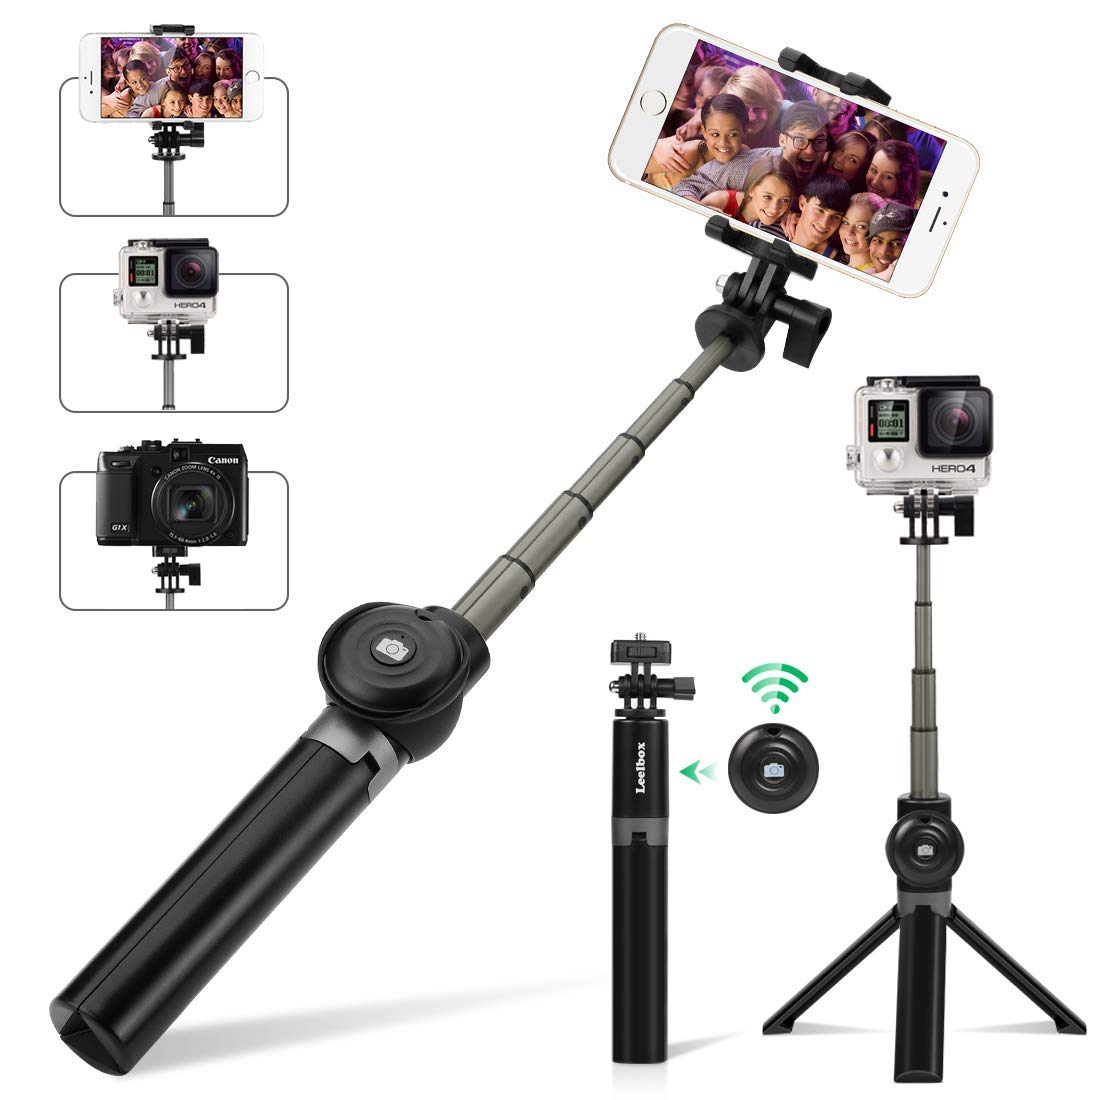 c8f75b369150fd Leelbox Bluetooth Selfie Stick with Tripod and Detachable Wireless Remote  Extendable Monopod Stand Holder Universal for